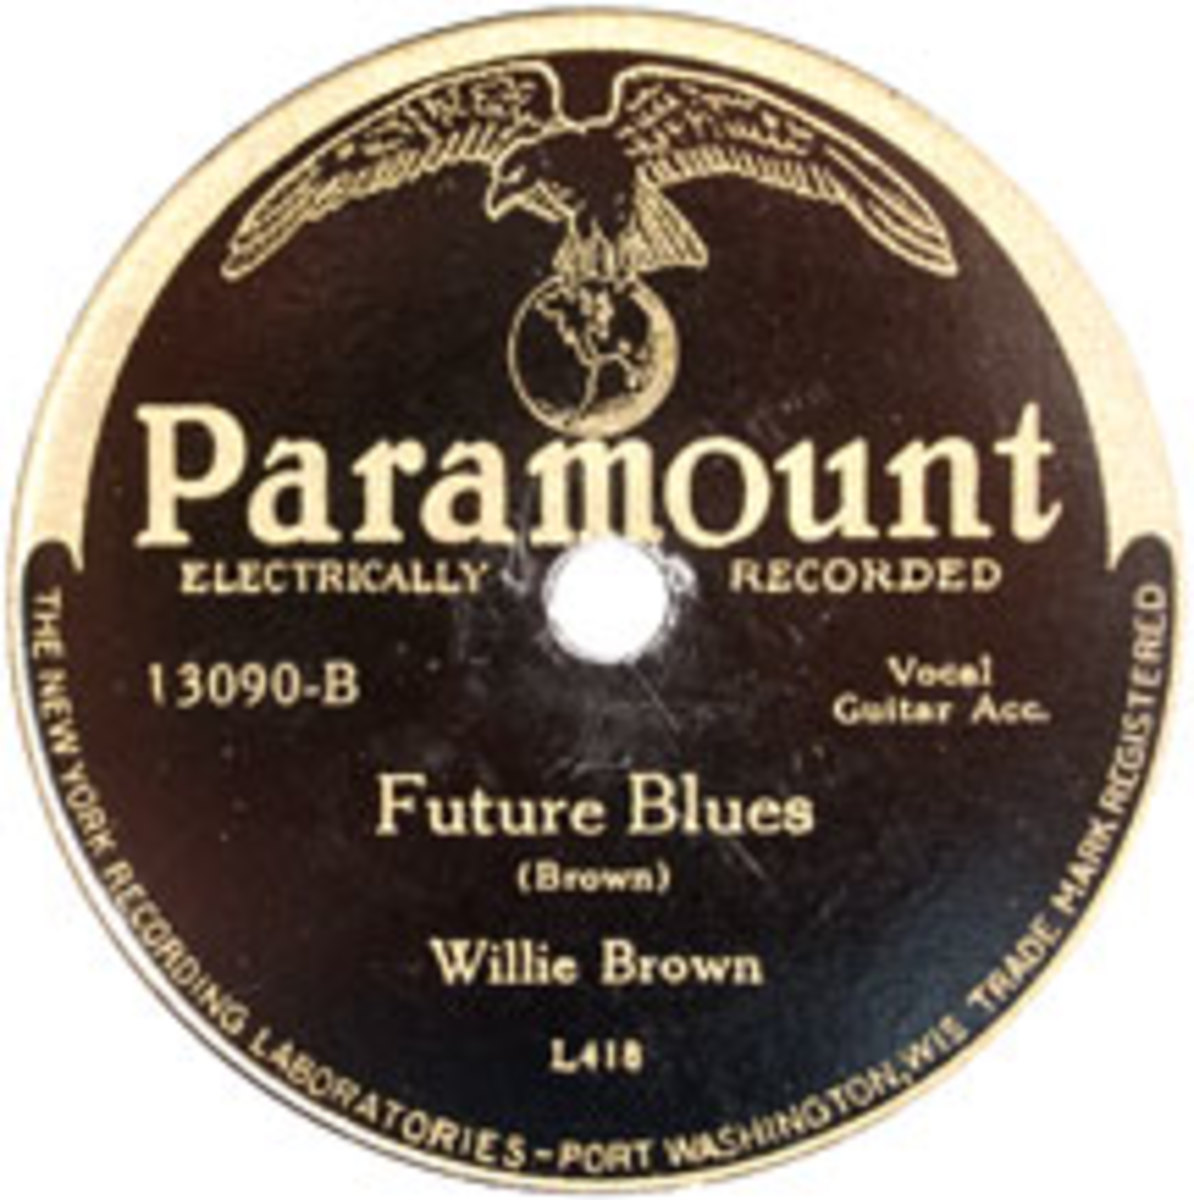 Willie Brown's Future Blues